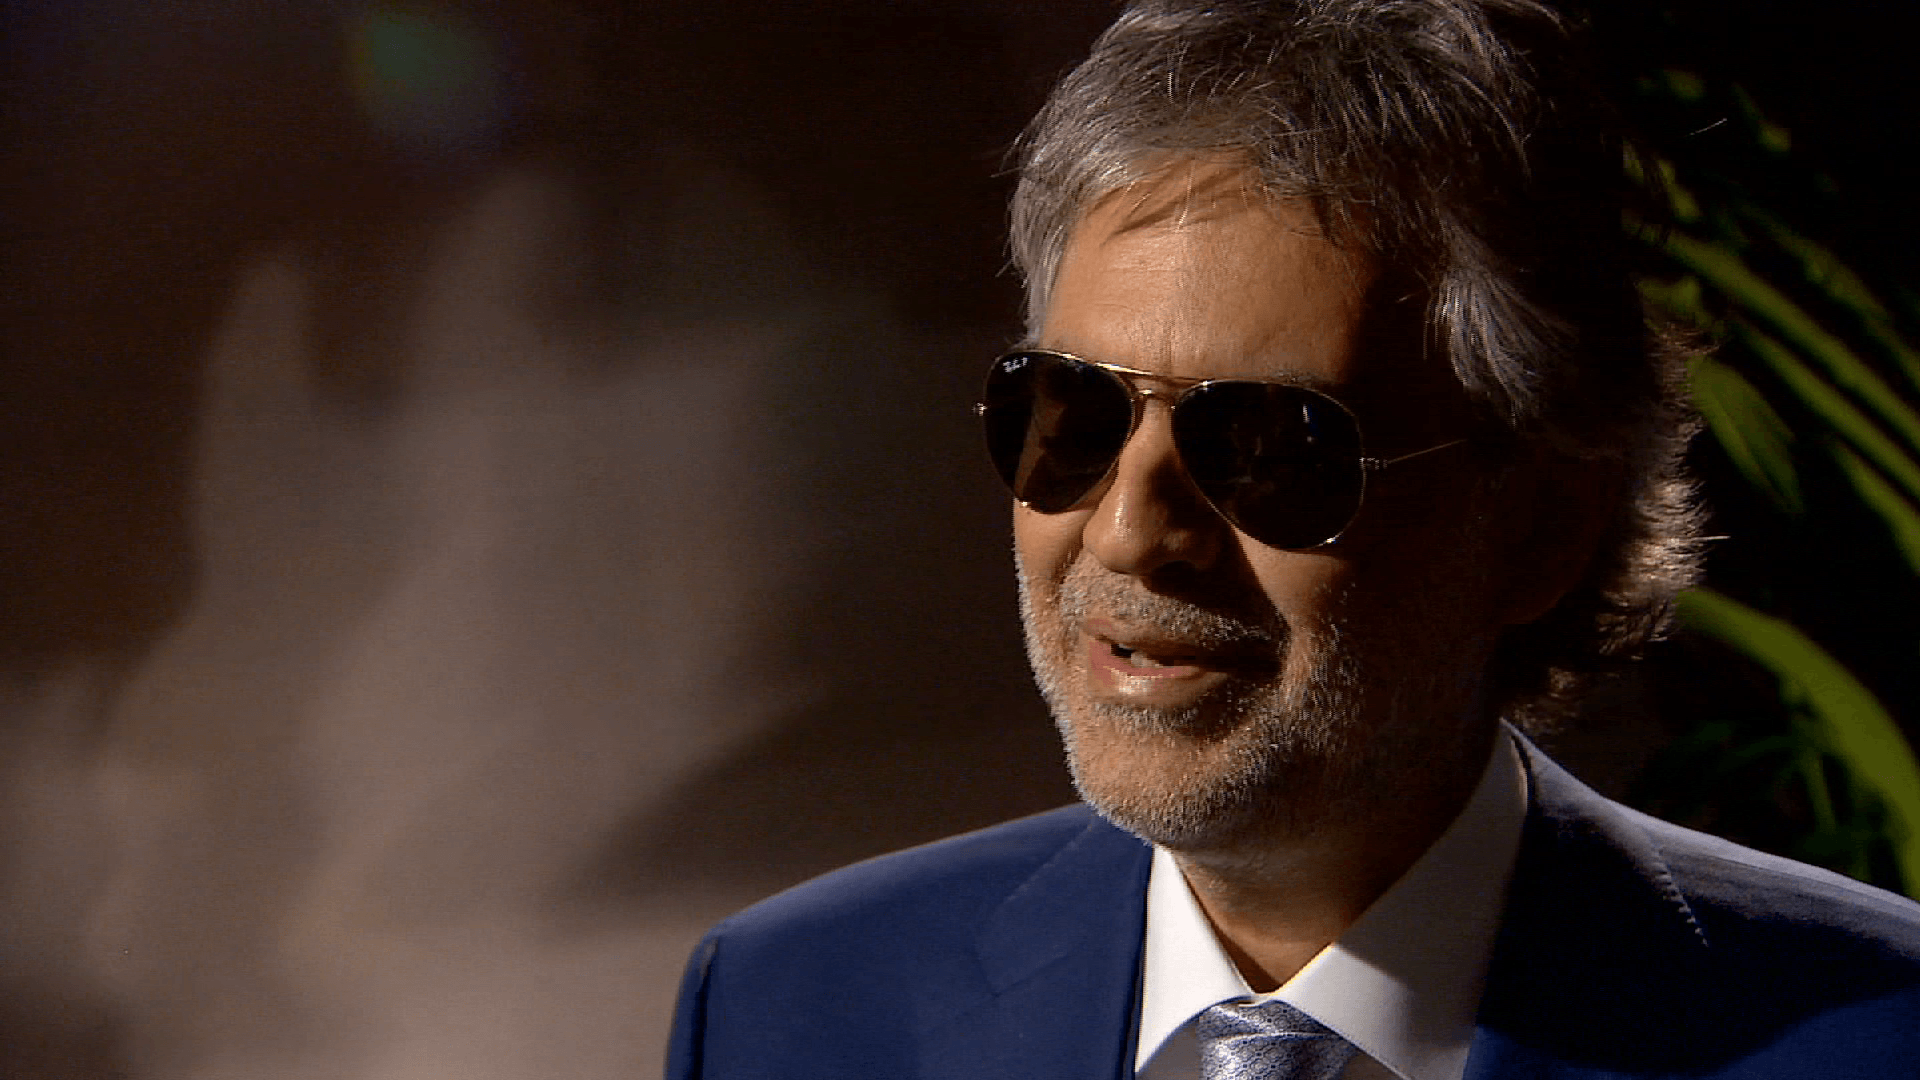 Andrea Bocelli shares voice, views in Davos